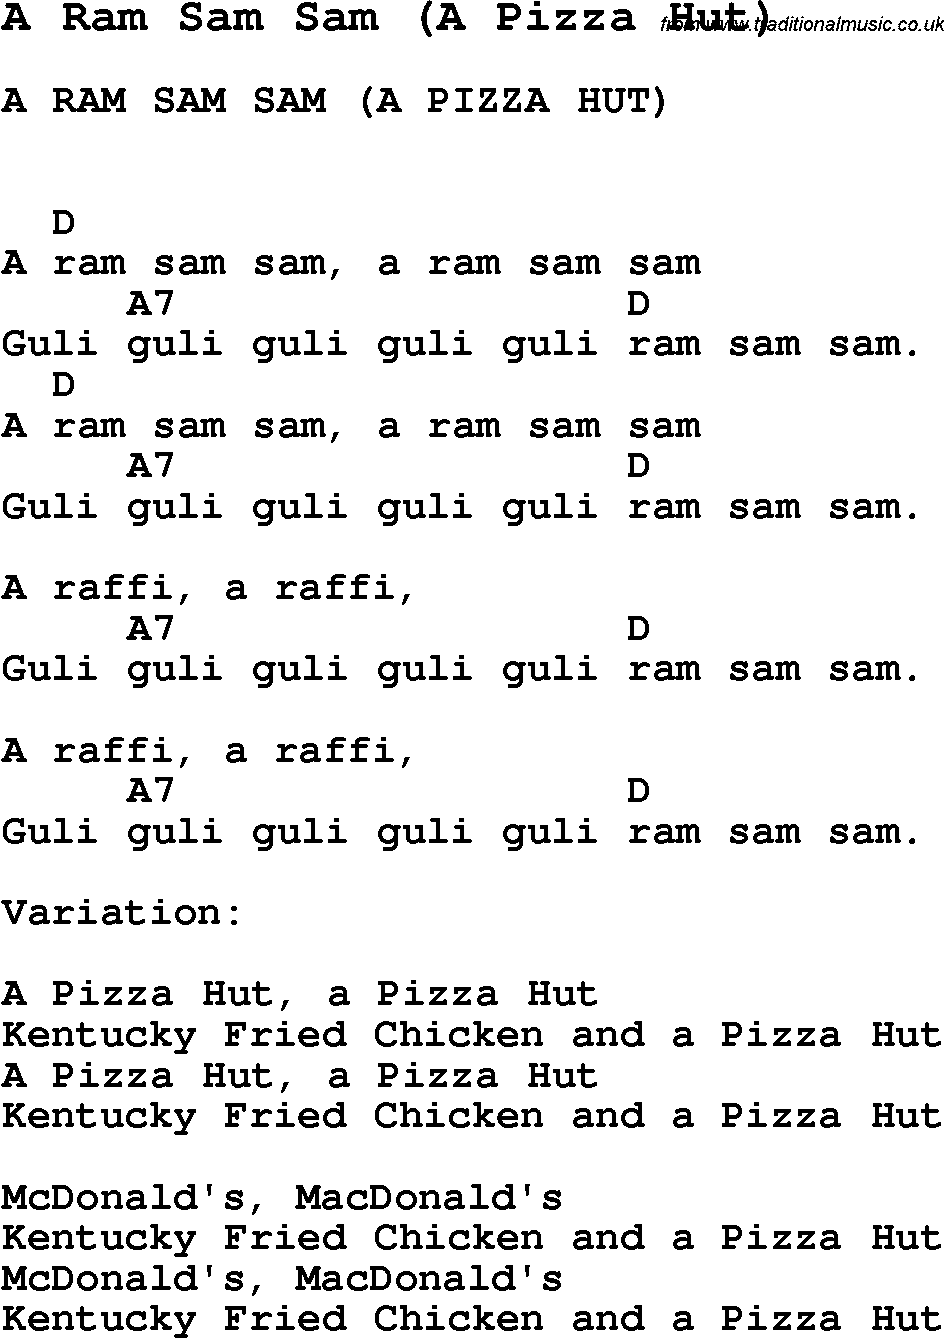 Summer-Camp Song, A Ram Sam Sam (A Pizza Hut), with lyrics and ...